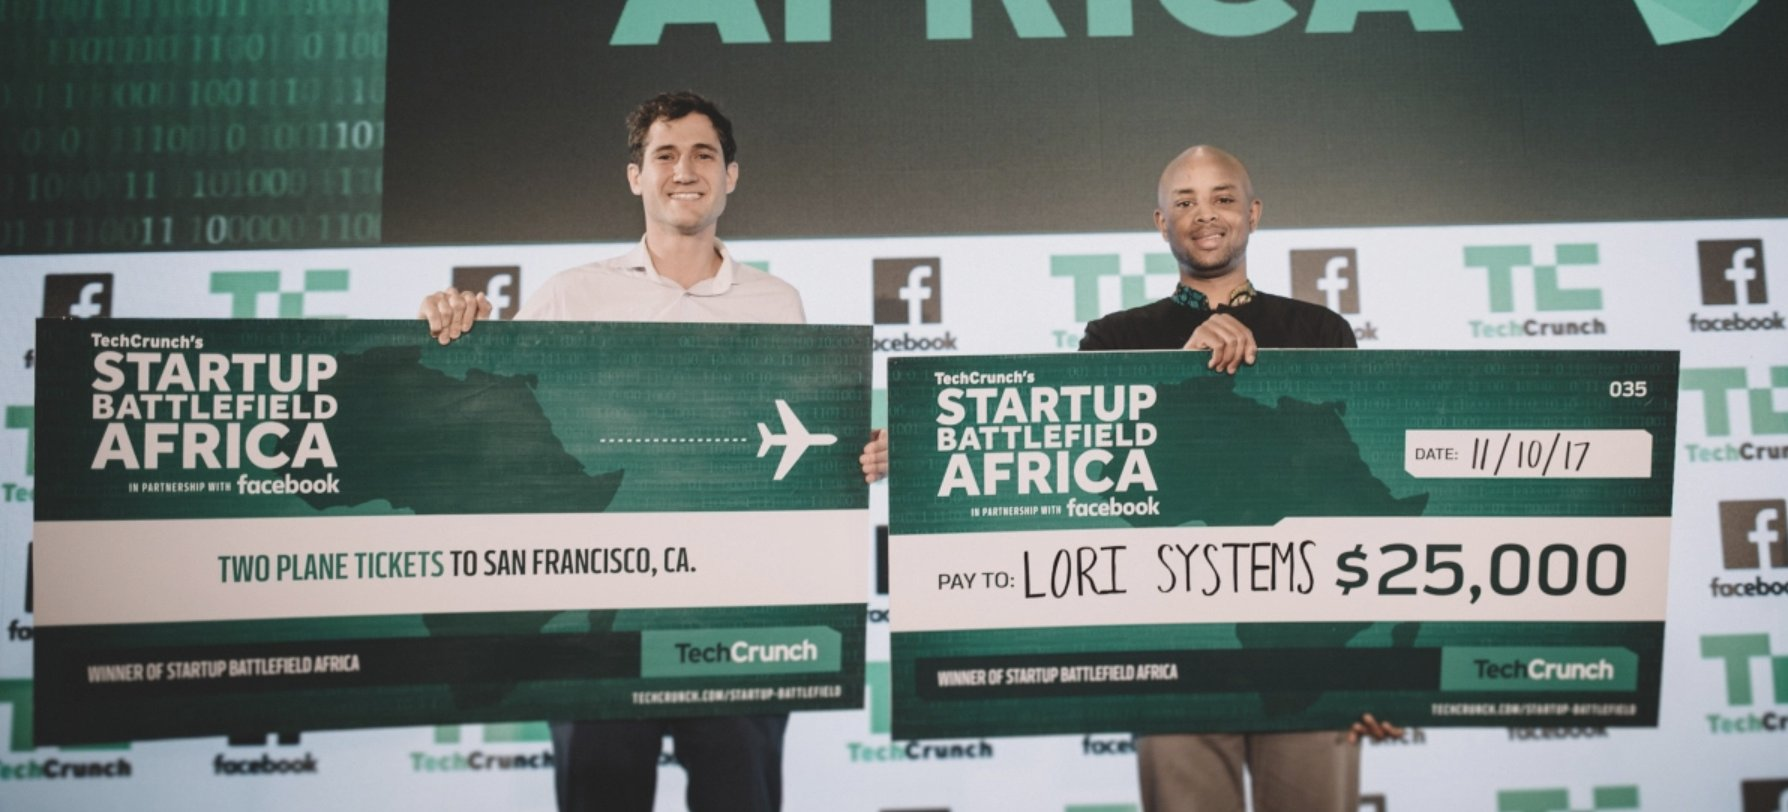 Lori Systems wins Best of Show at Startup Battlefield Africa https://t.co/uF2hj13CZ9 https://t.co/NkobWIg3RT